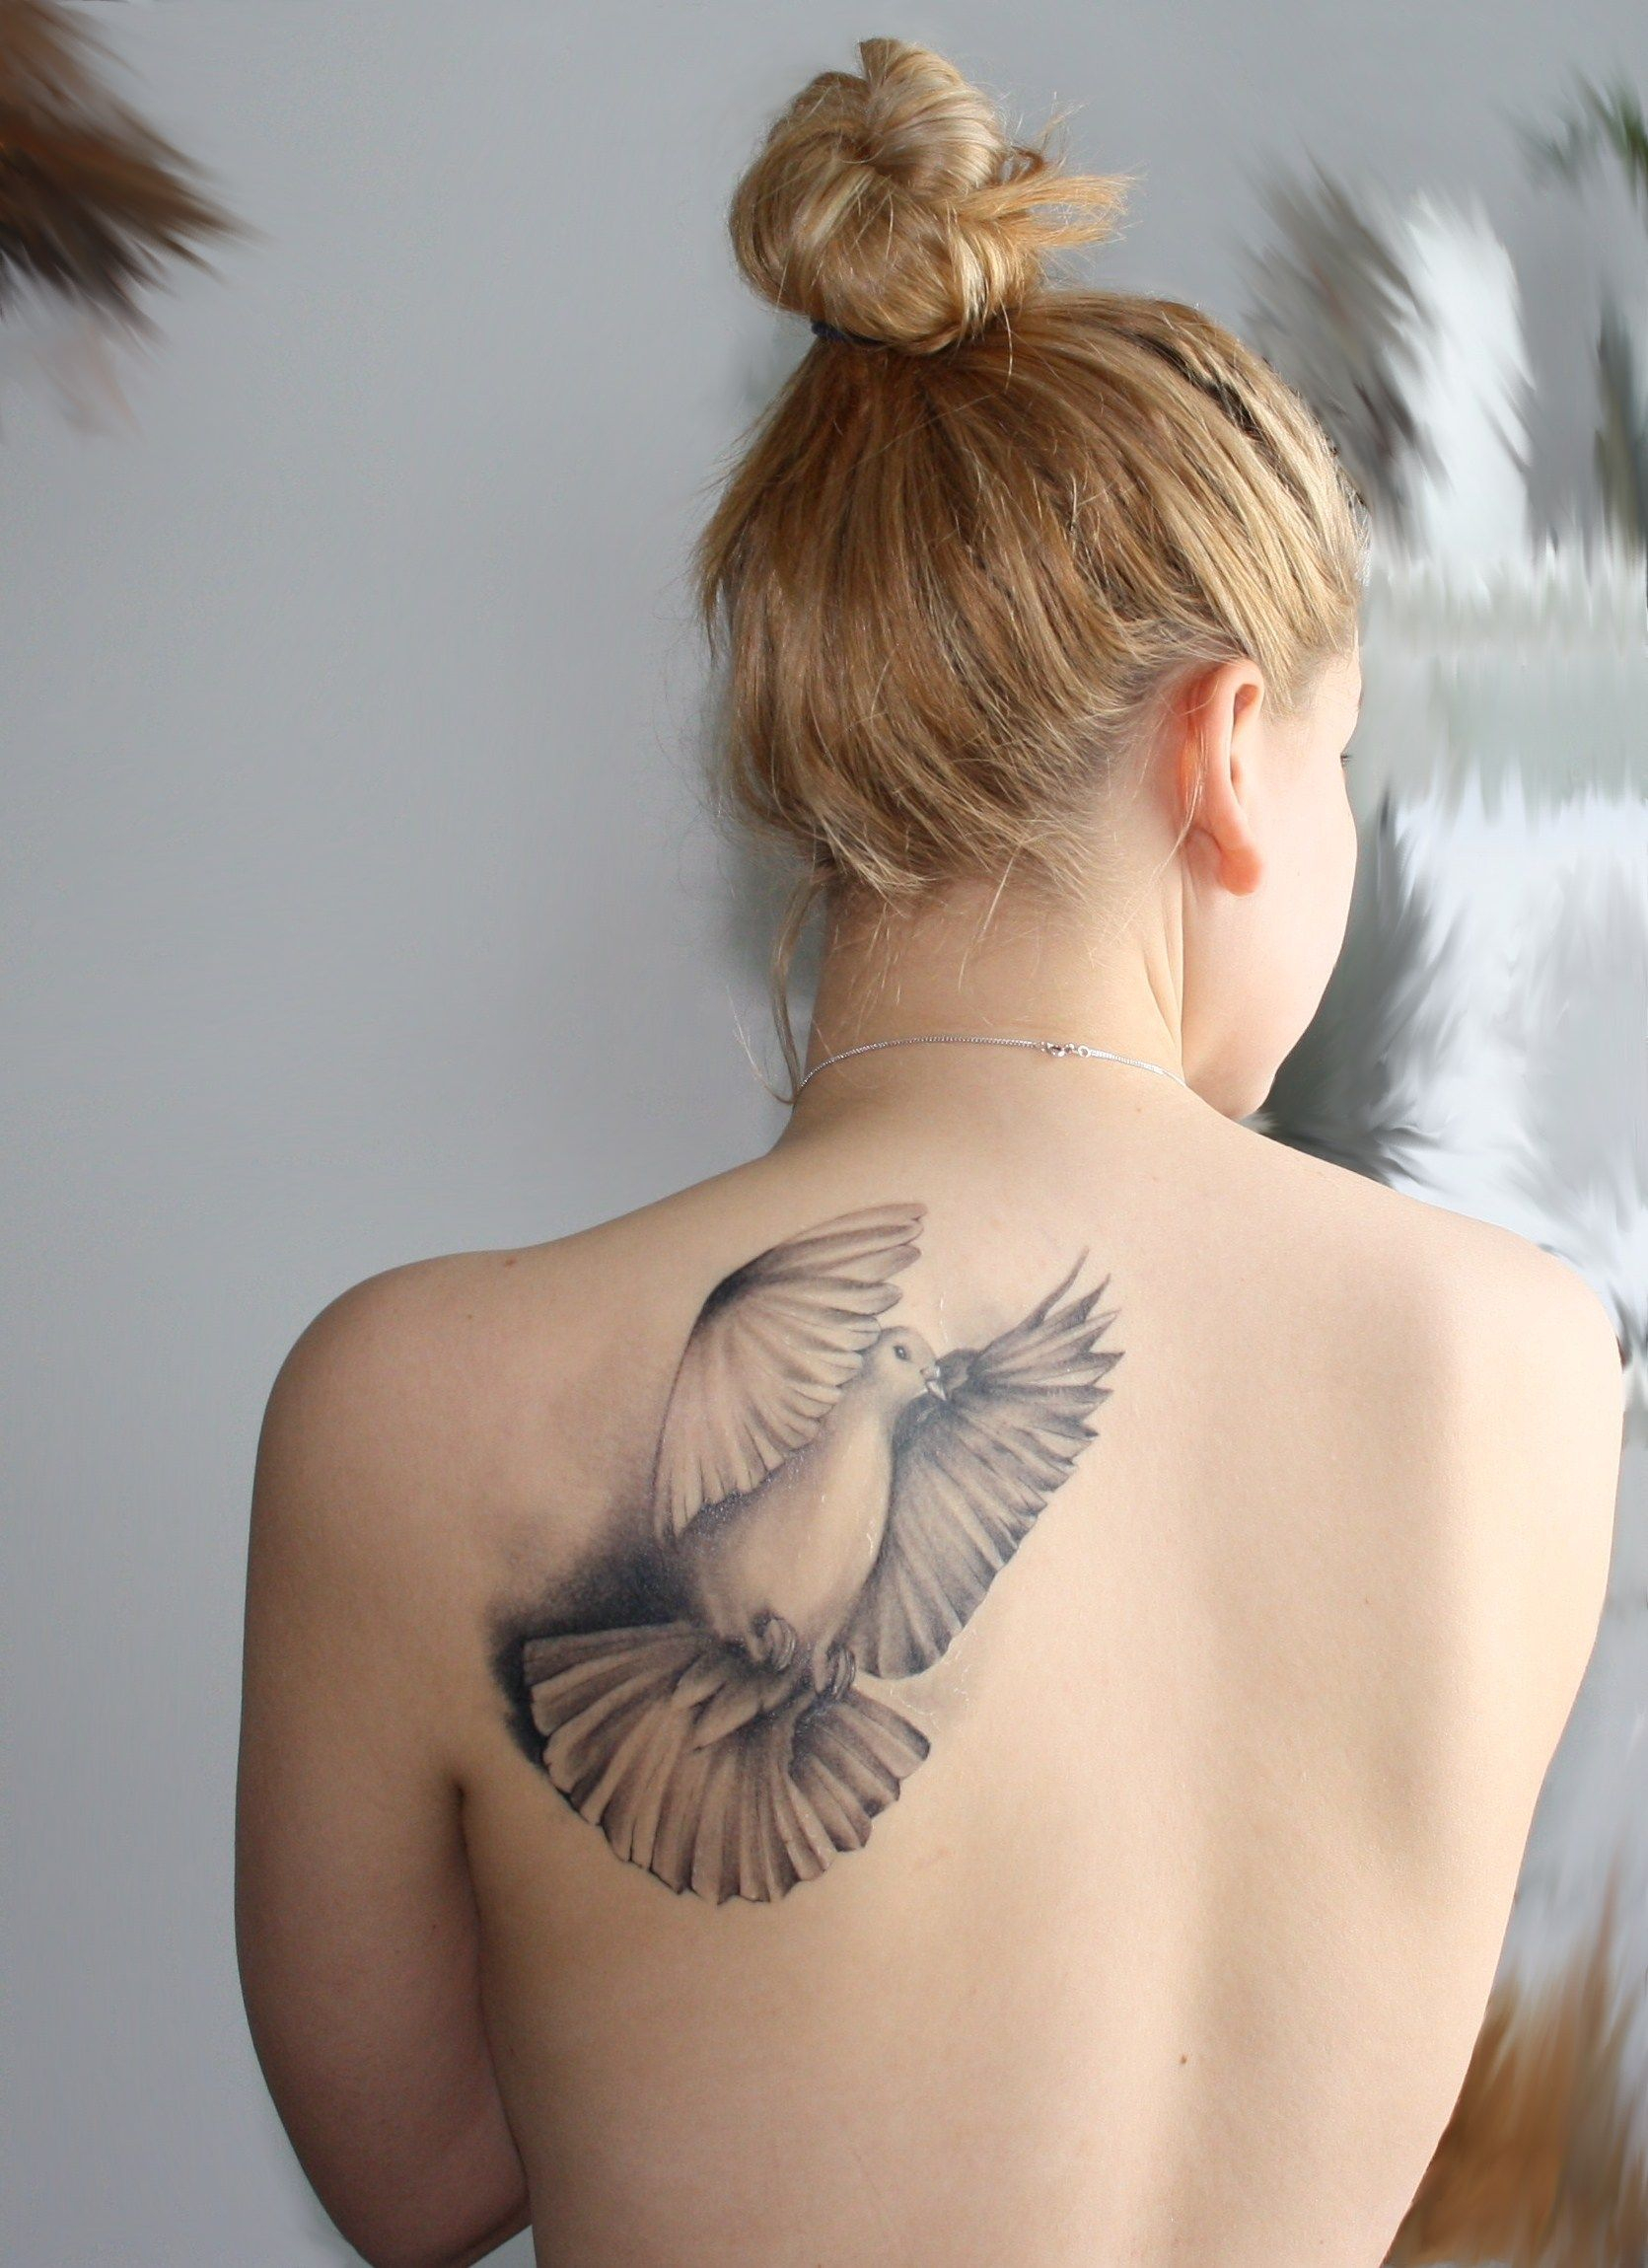 Back Bird Tusch Coole Tattoos Tattoo Designs Tattoos Frauen throughout dimensions 1671 X 2299